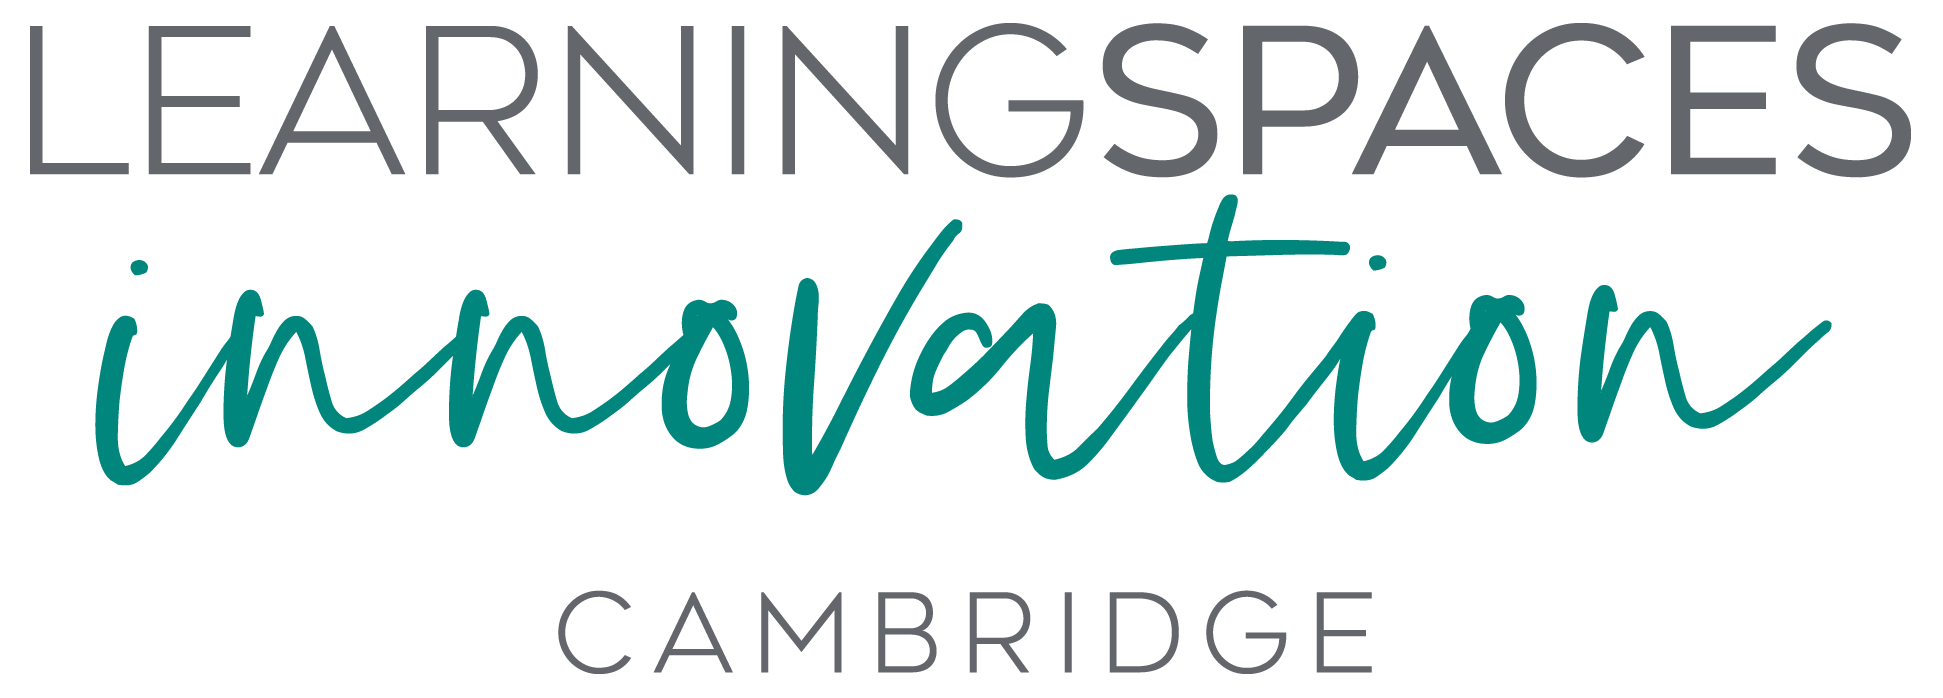 The Cambridge Centre for Learning Spaces Innovation